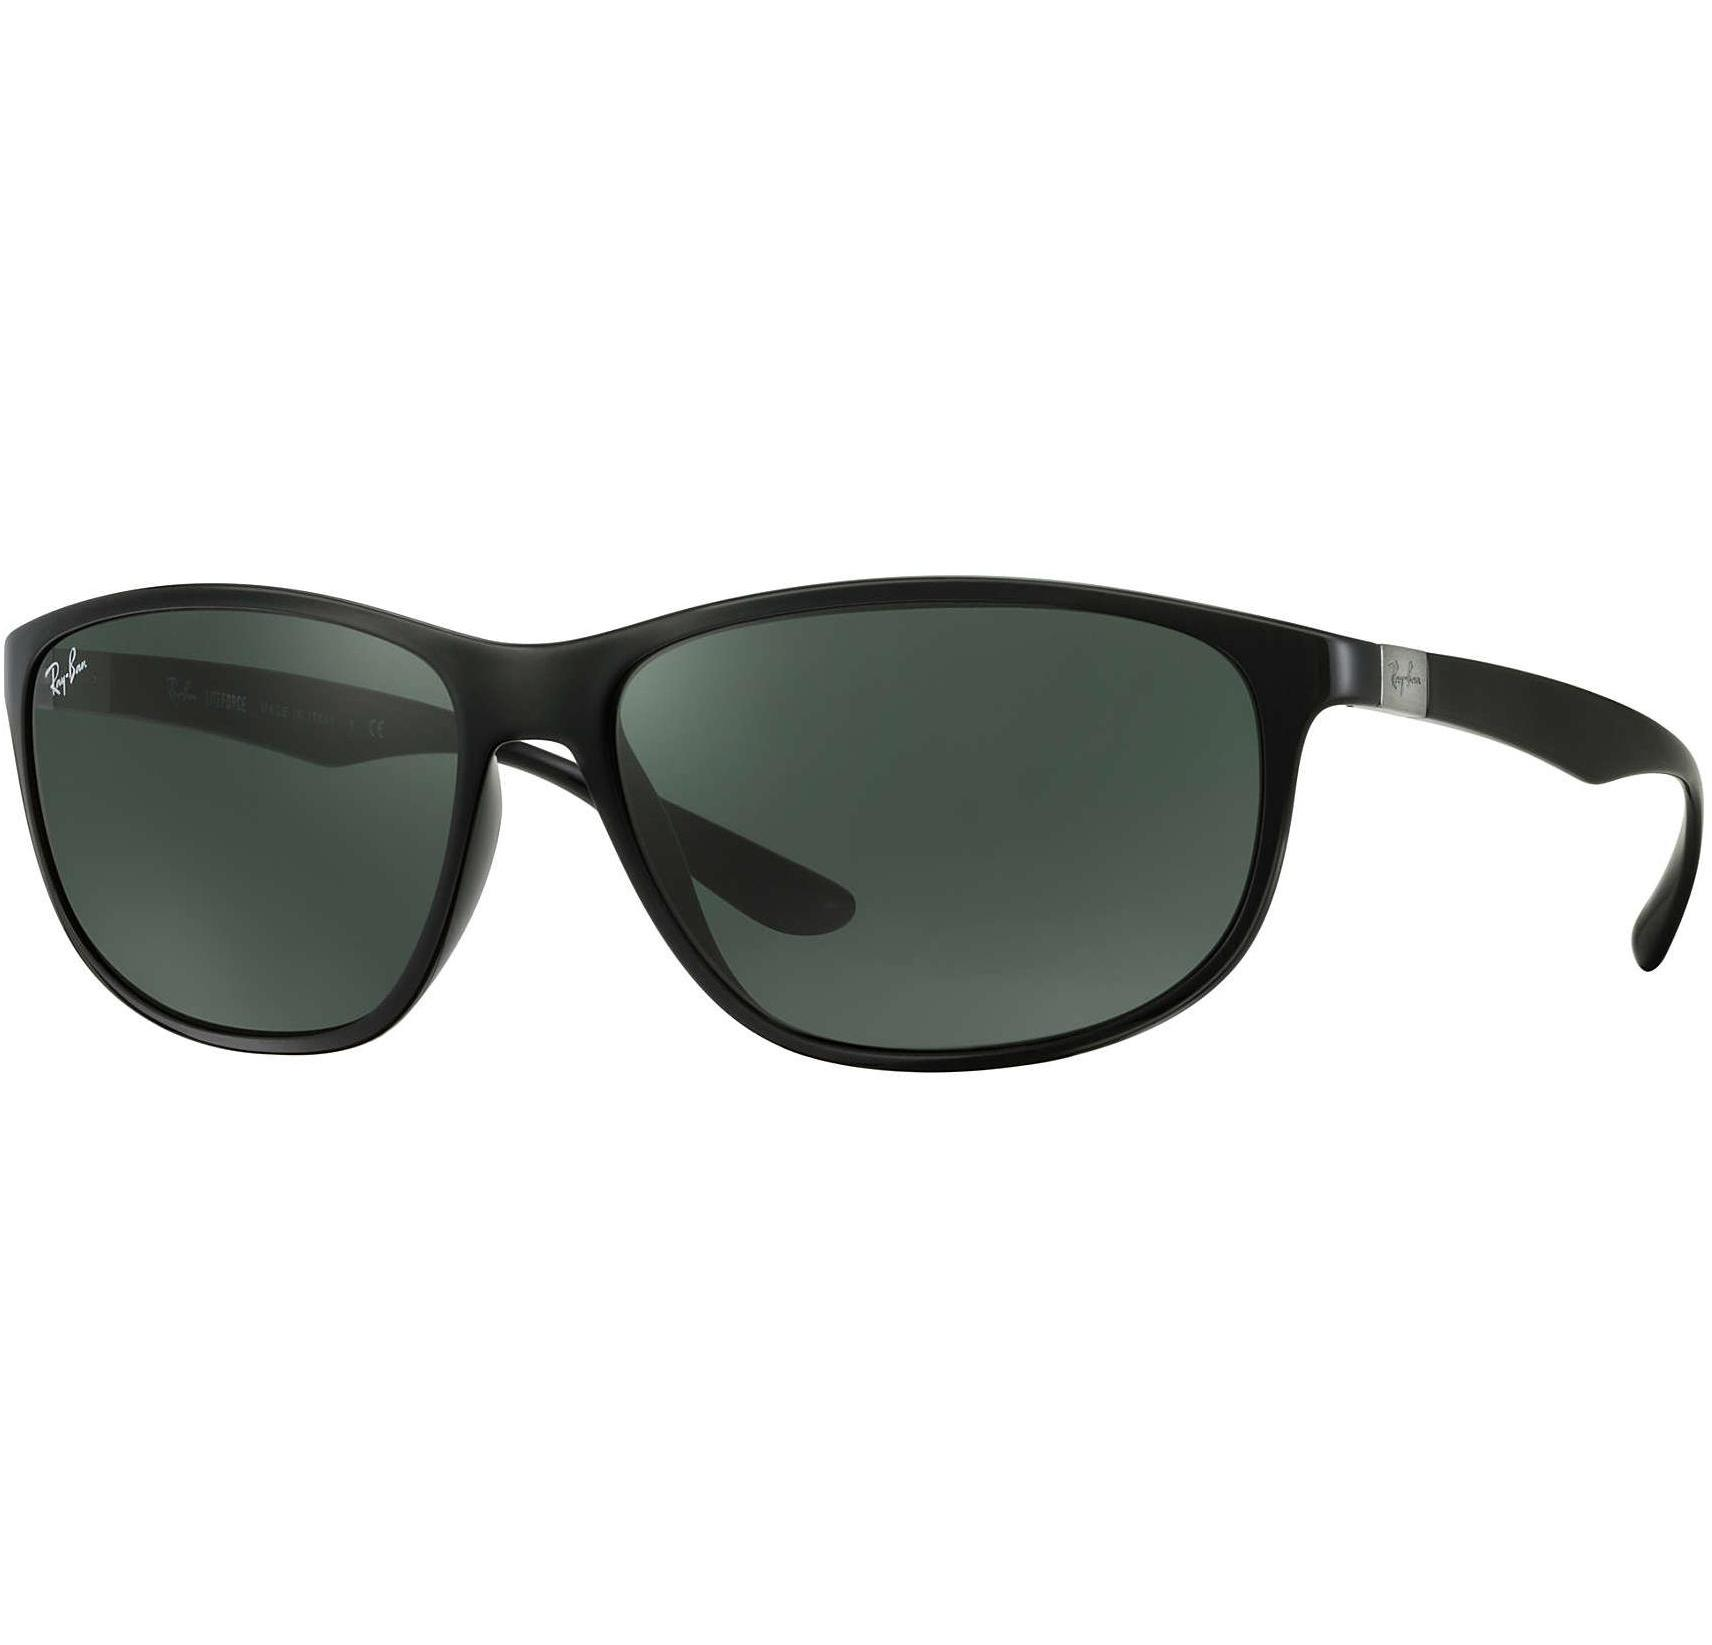 0757ef5797d Buy Ray-ban Liteforce Black green Classic Lens in Dubai at cheap price